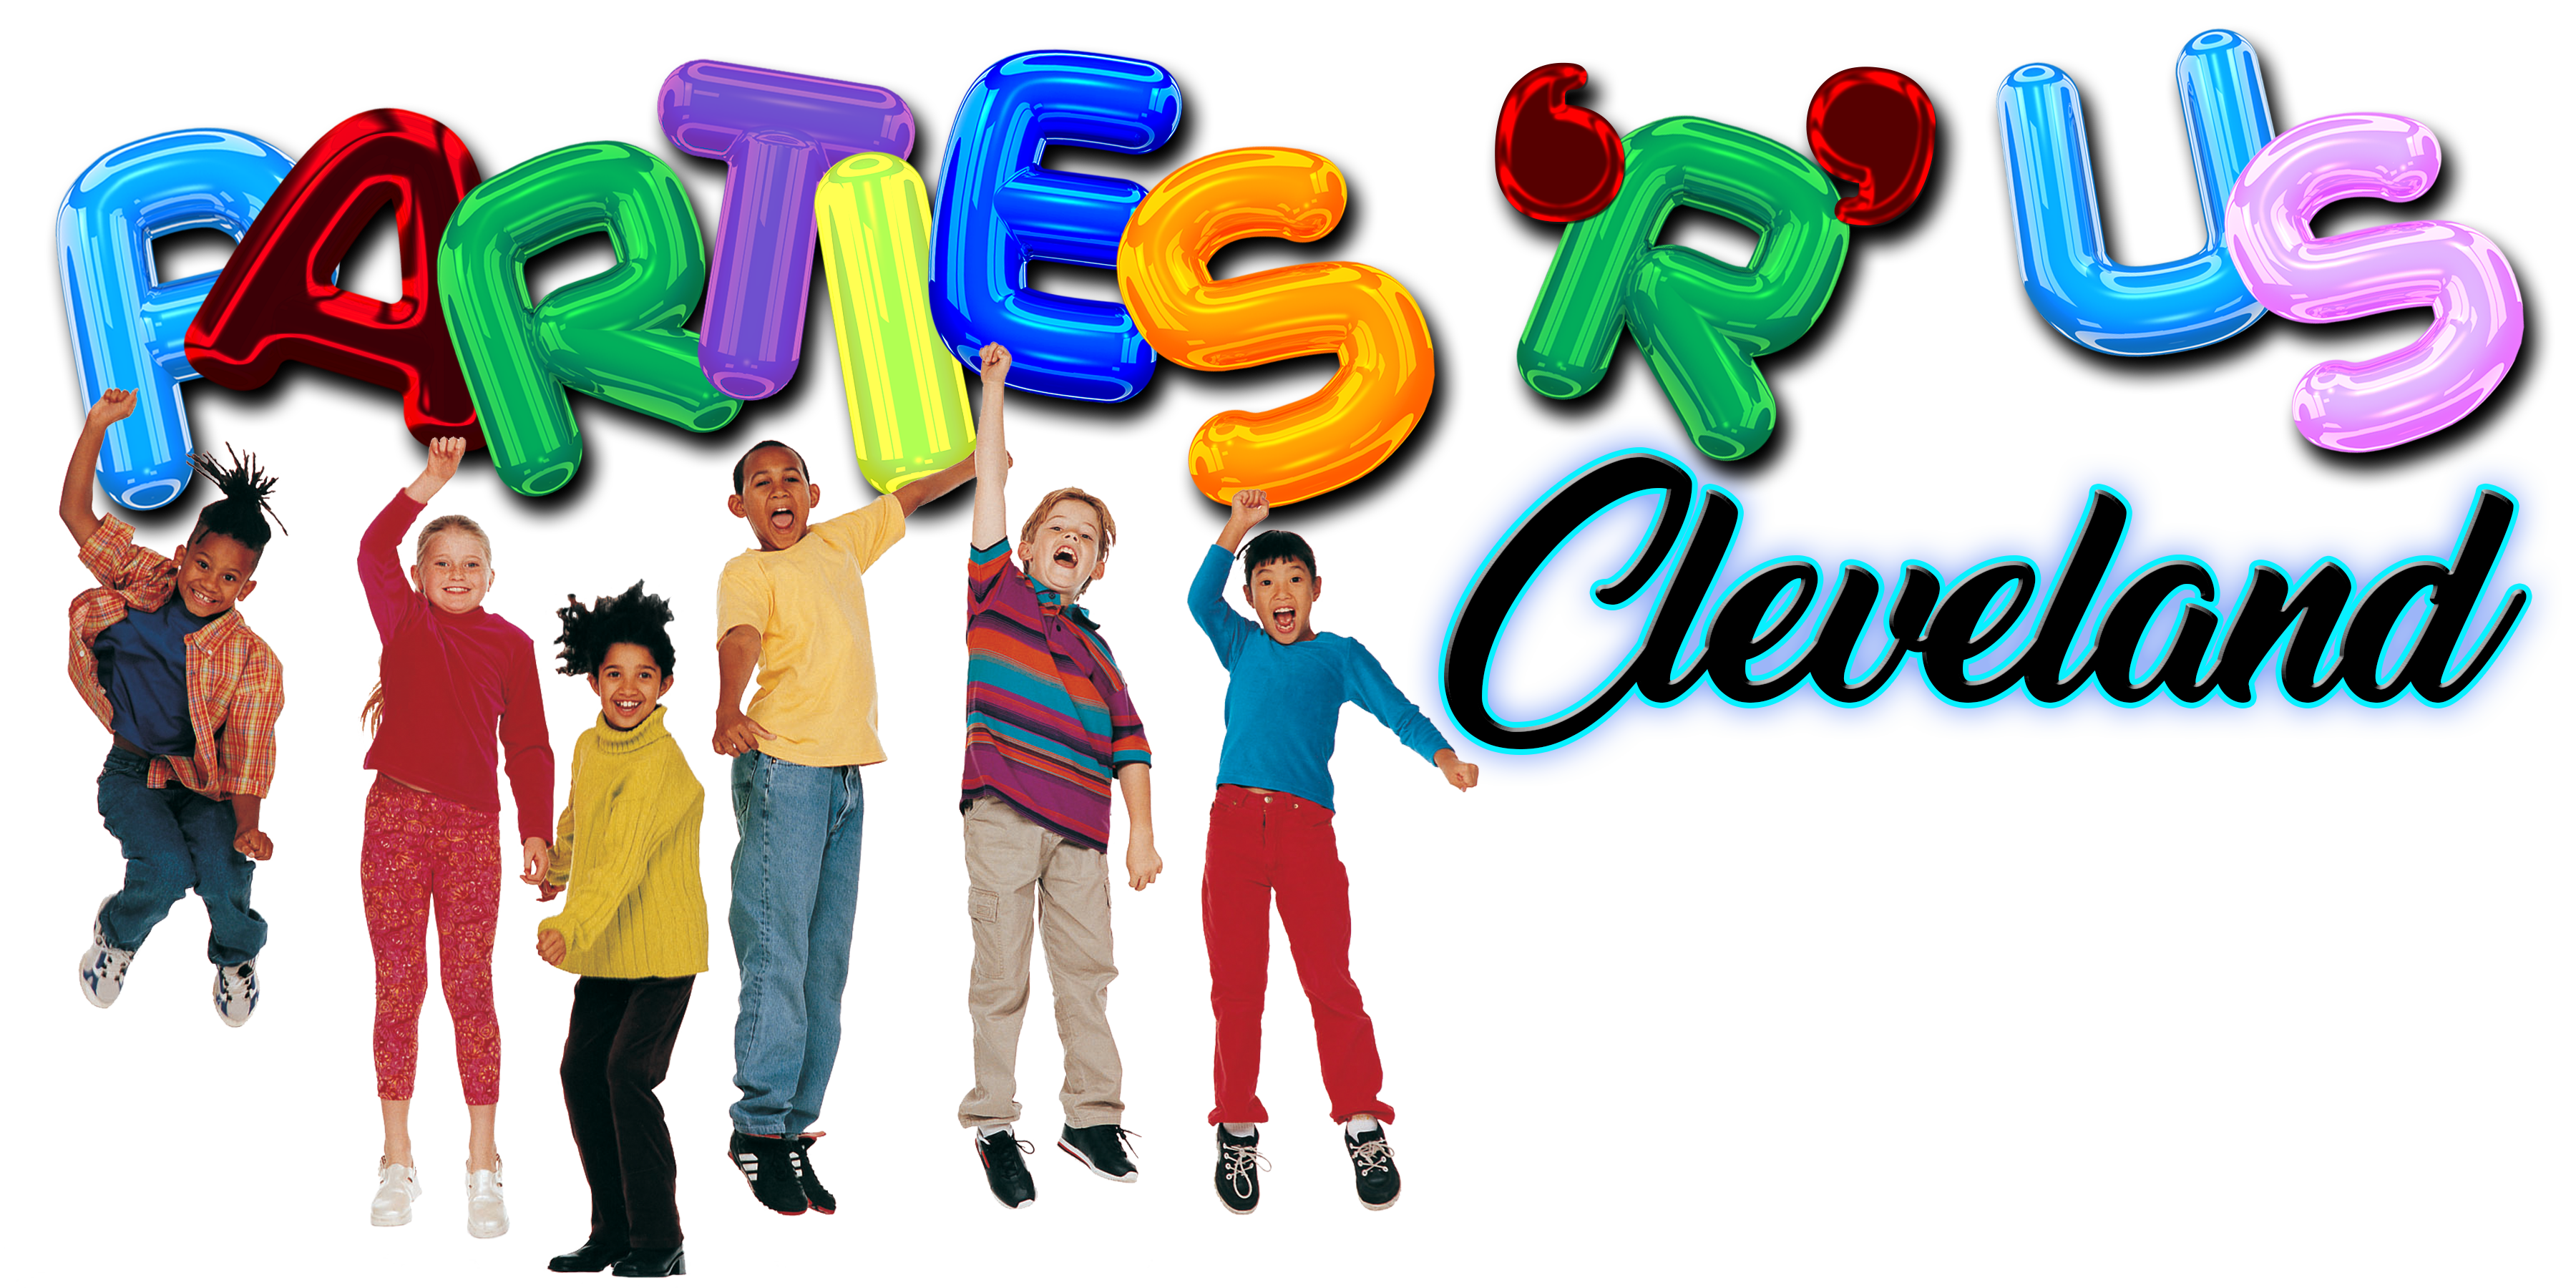 Teen clipart welcome party, Teen welcome party Transparent.